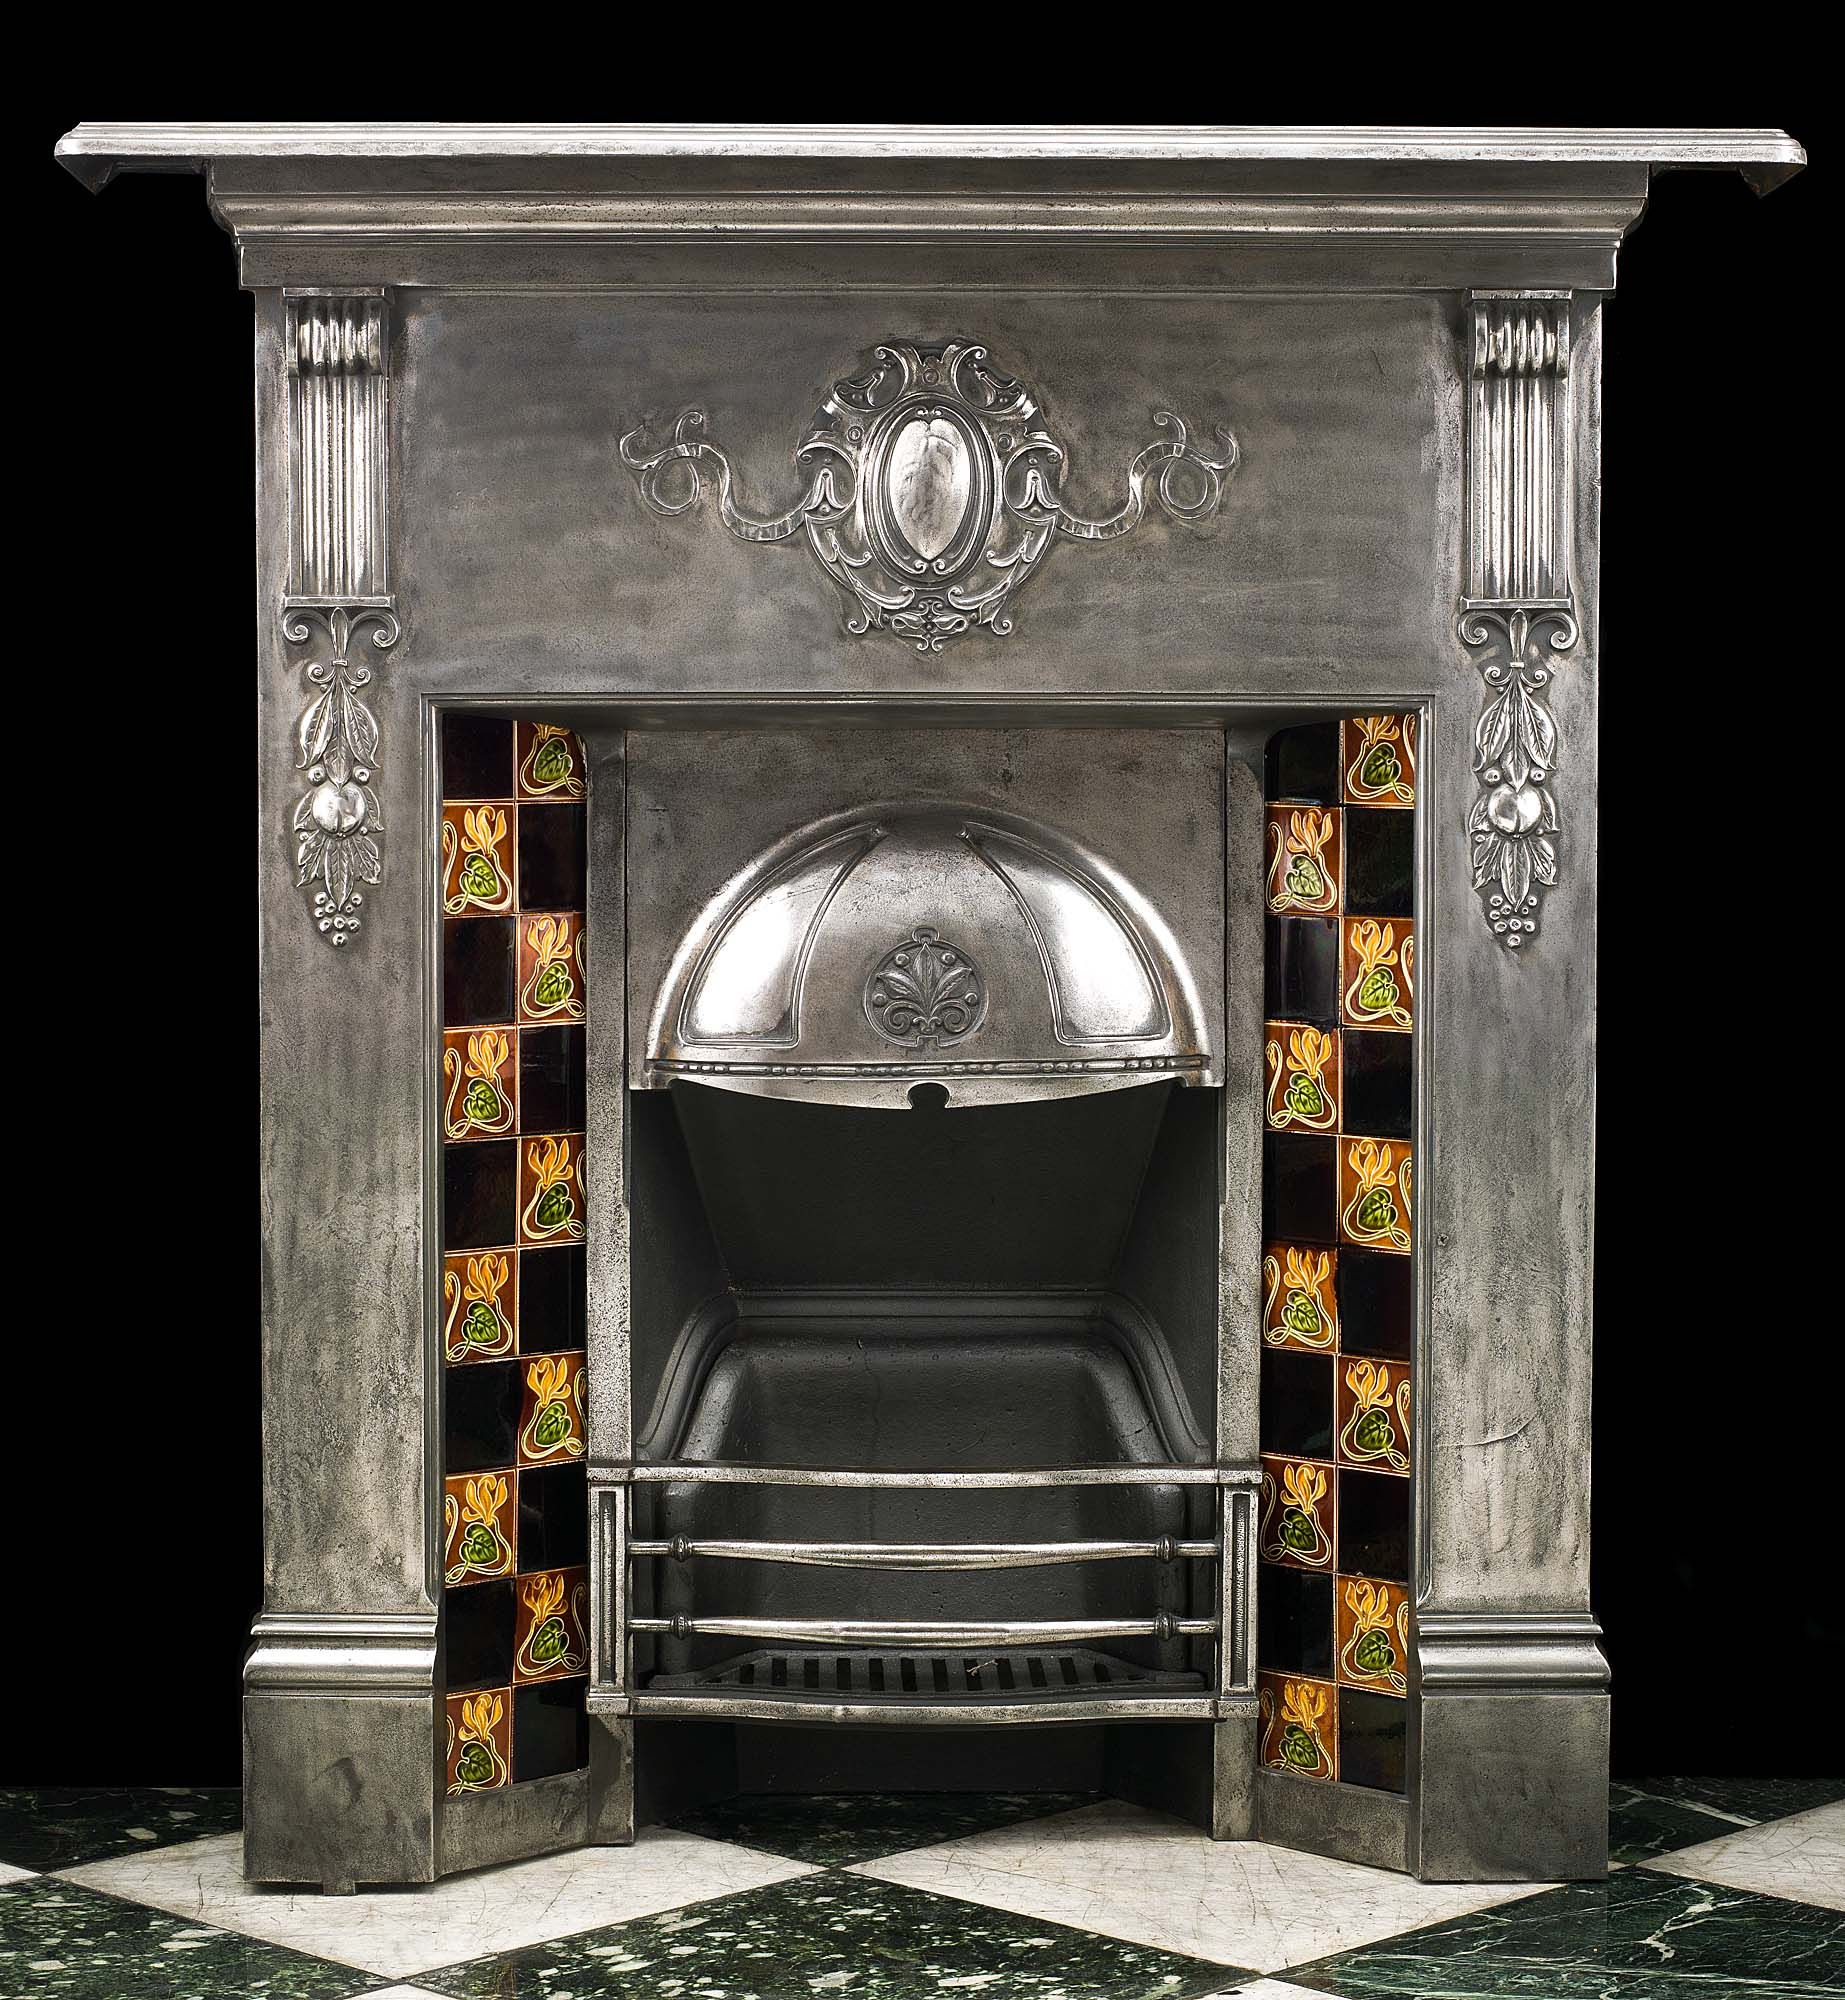 Small Fireplace Mantel Surrounds: Antique Small Cast Iron Victorian Fireplace Mantel